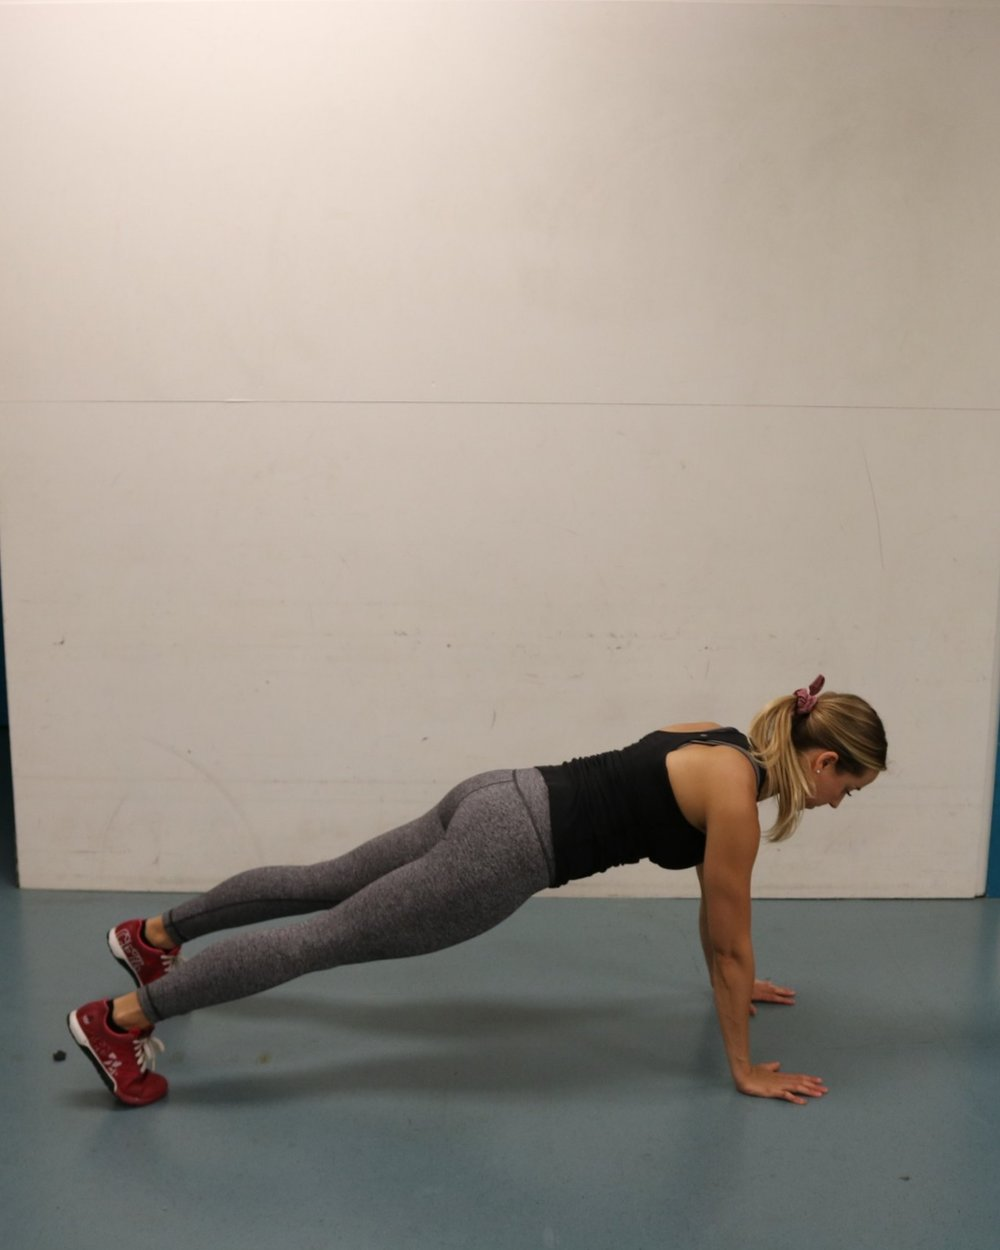 Hang-plank position to start